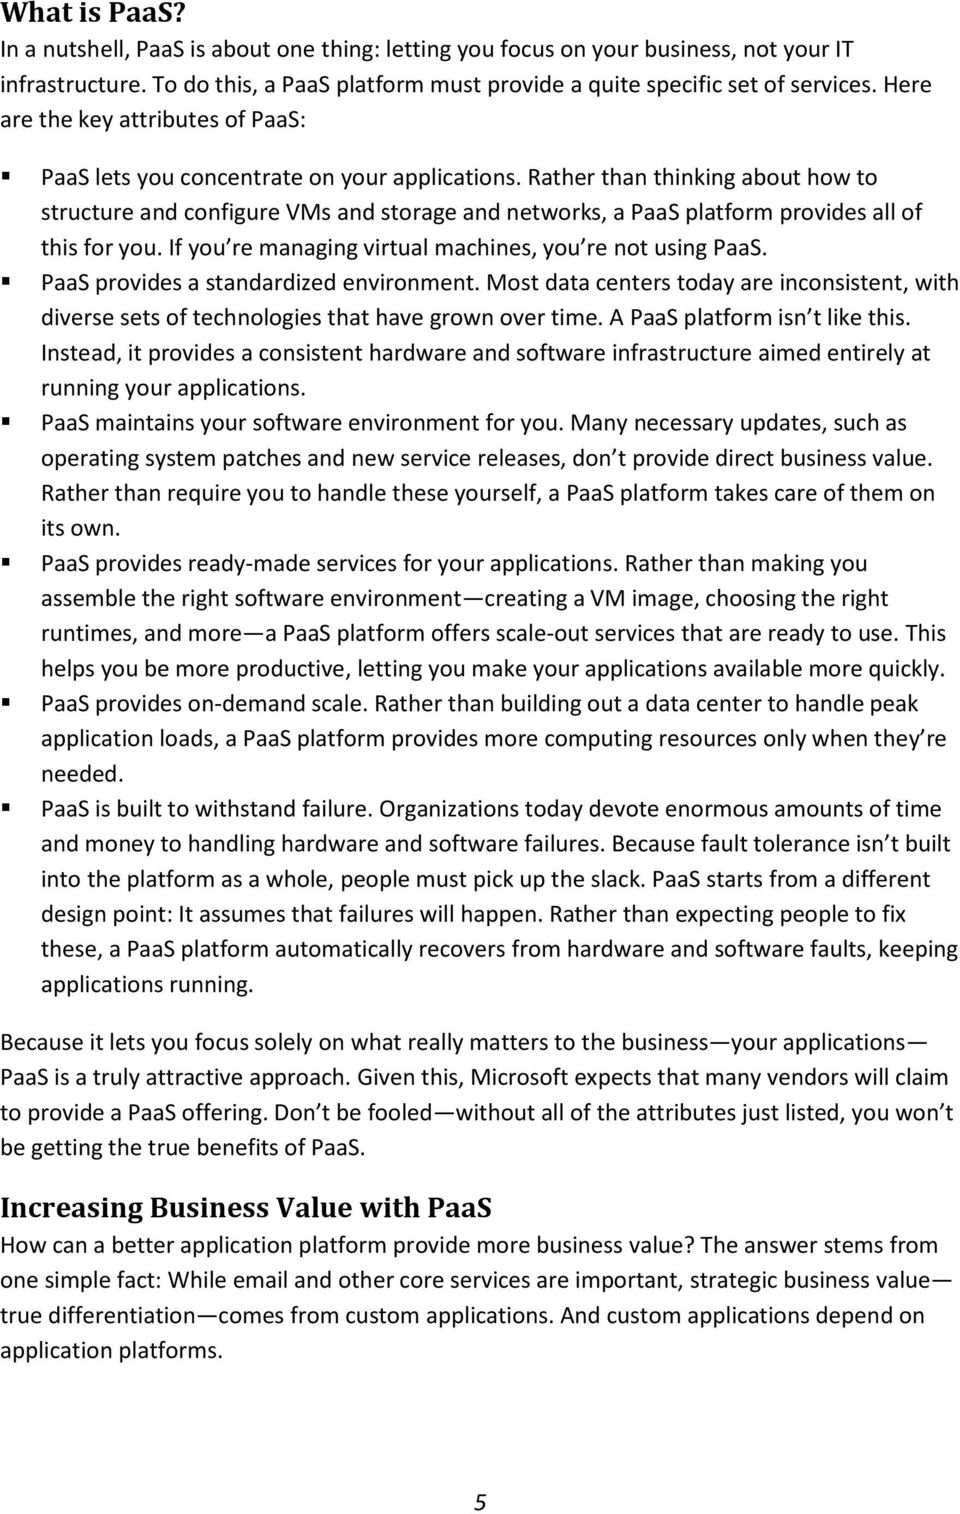 Rather than thinking about how to structure and configure VMs and storage and networks, a PaaS platform provides all of this for you. If you re managing virtual machines, you re not using PaaS.